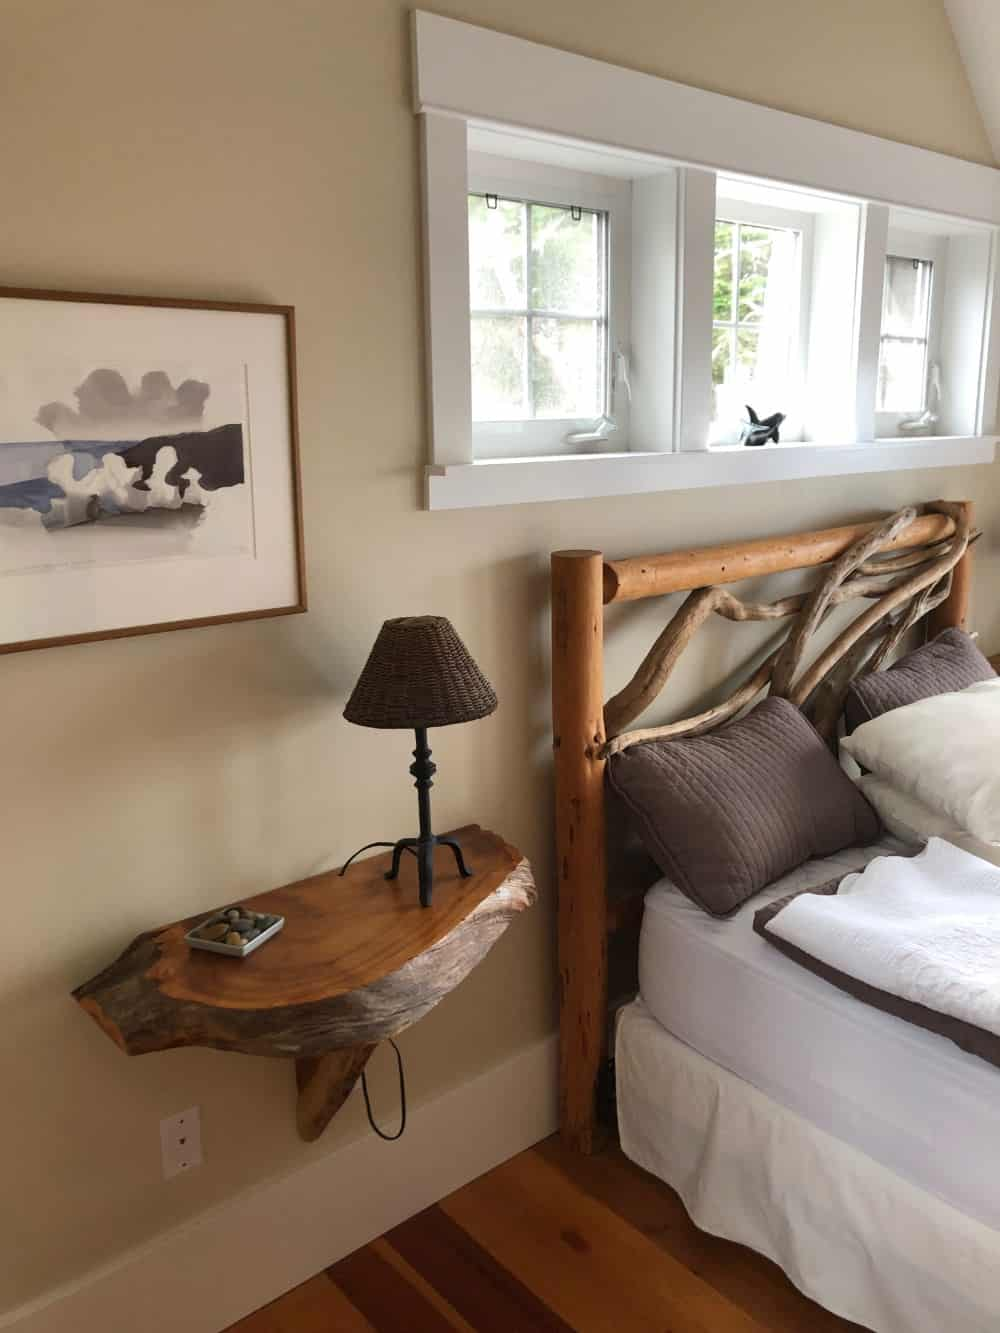 Custom wood floating bedside tables were a very nice touch.